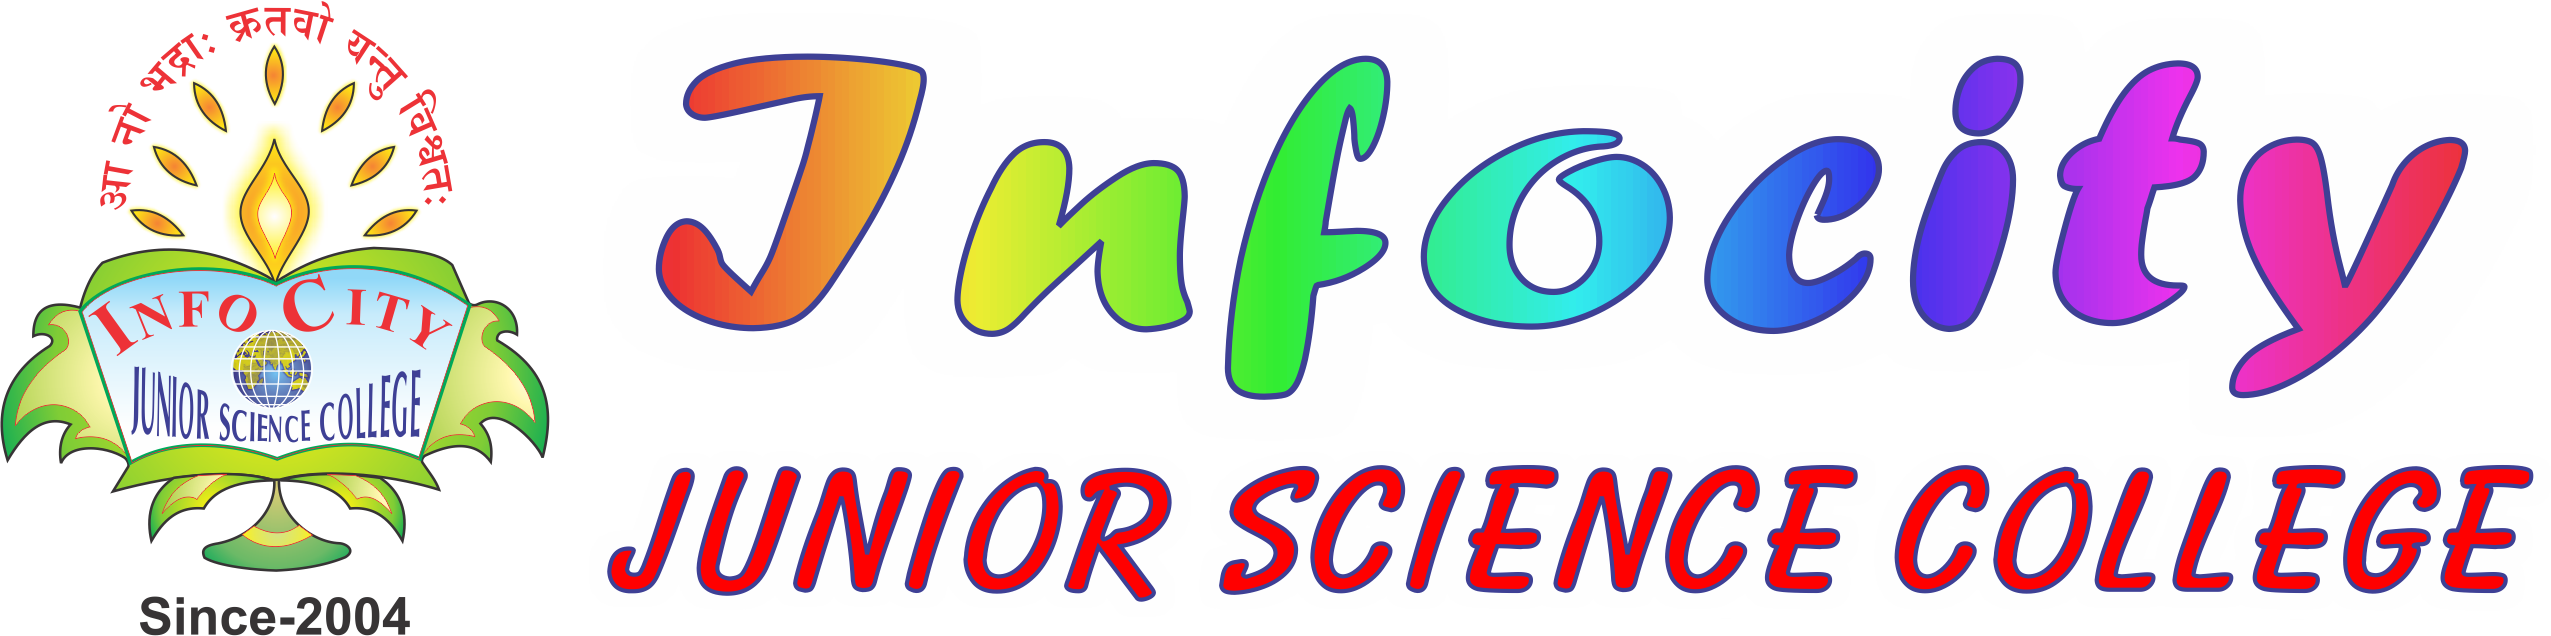 Welcome to Infocity Junior Science College